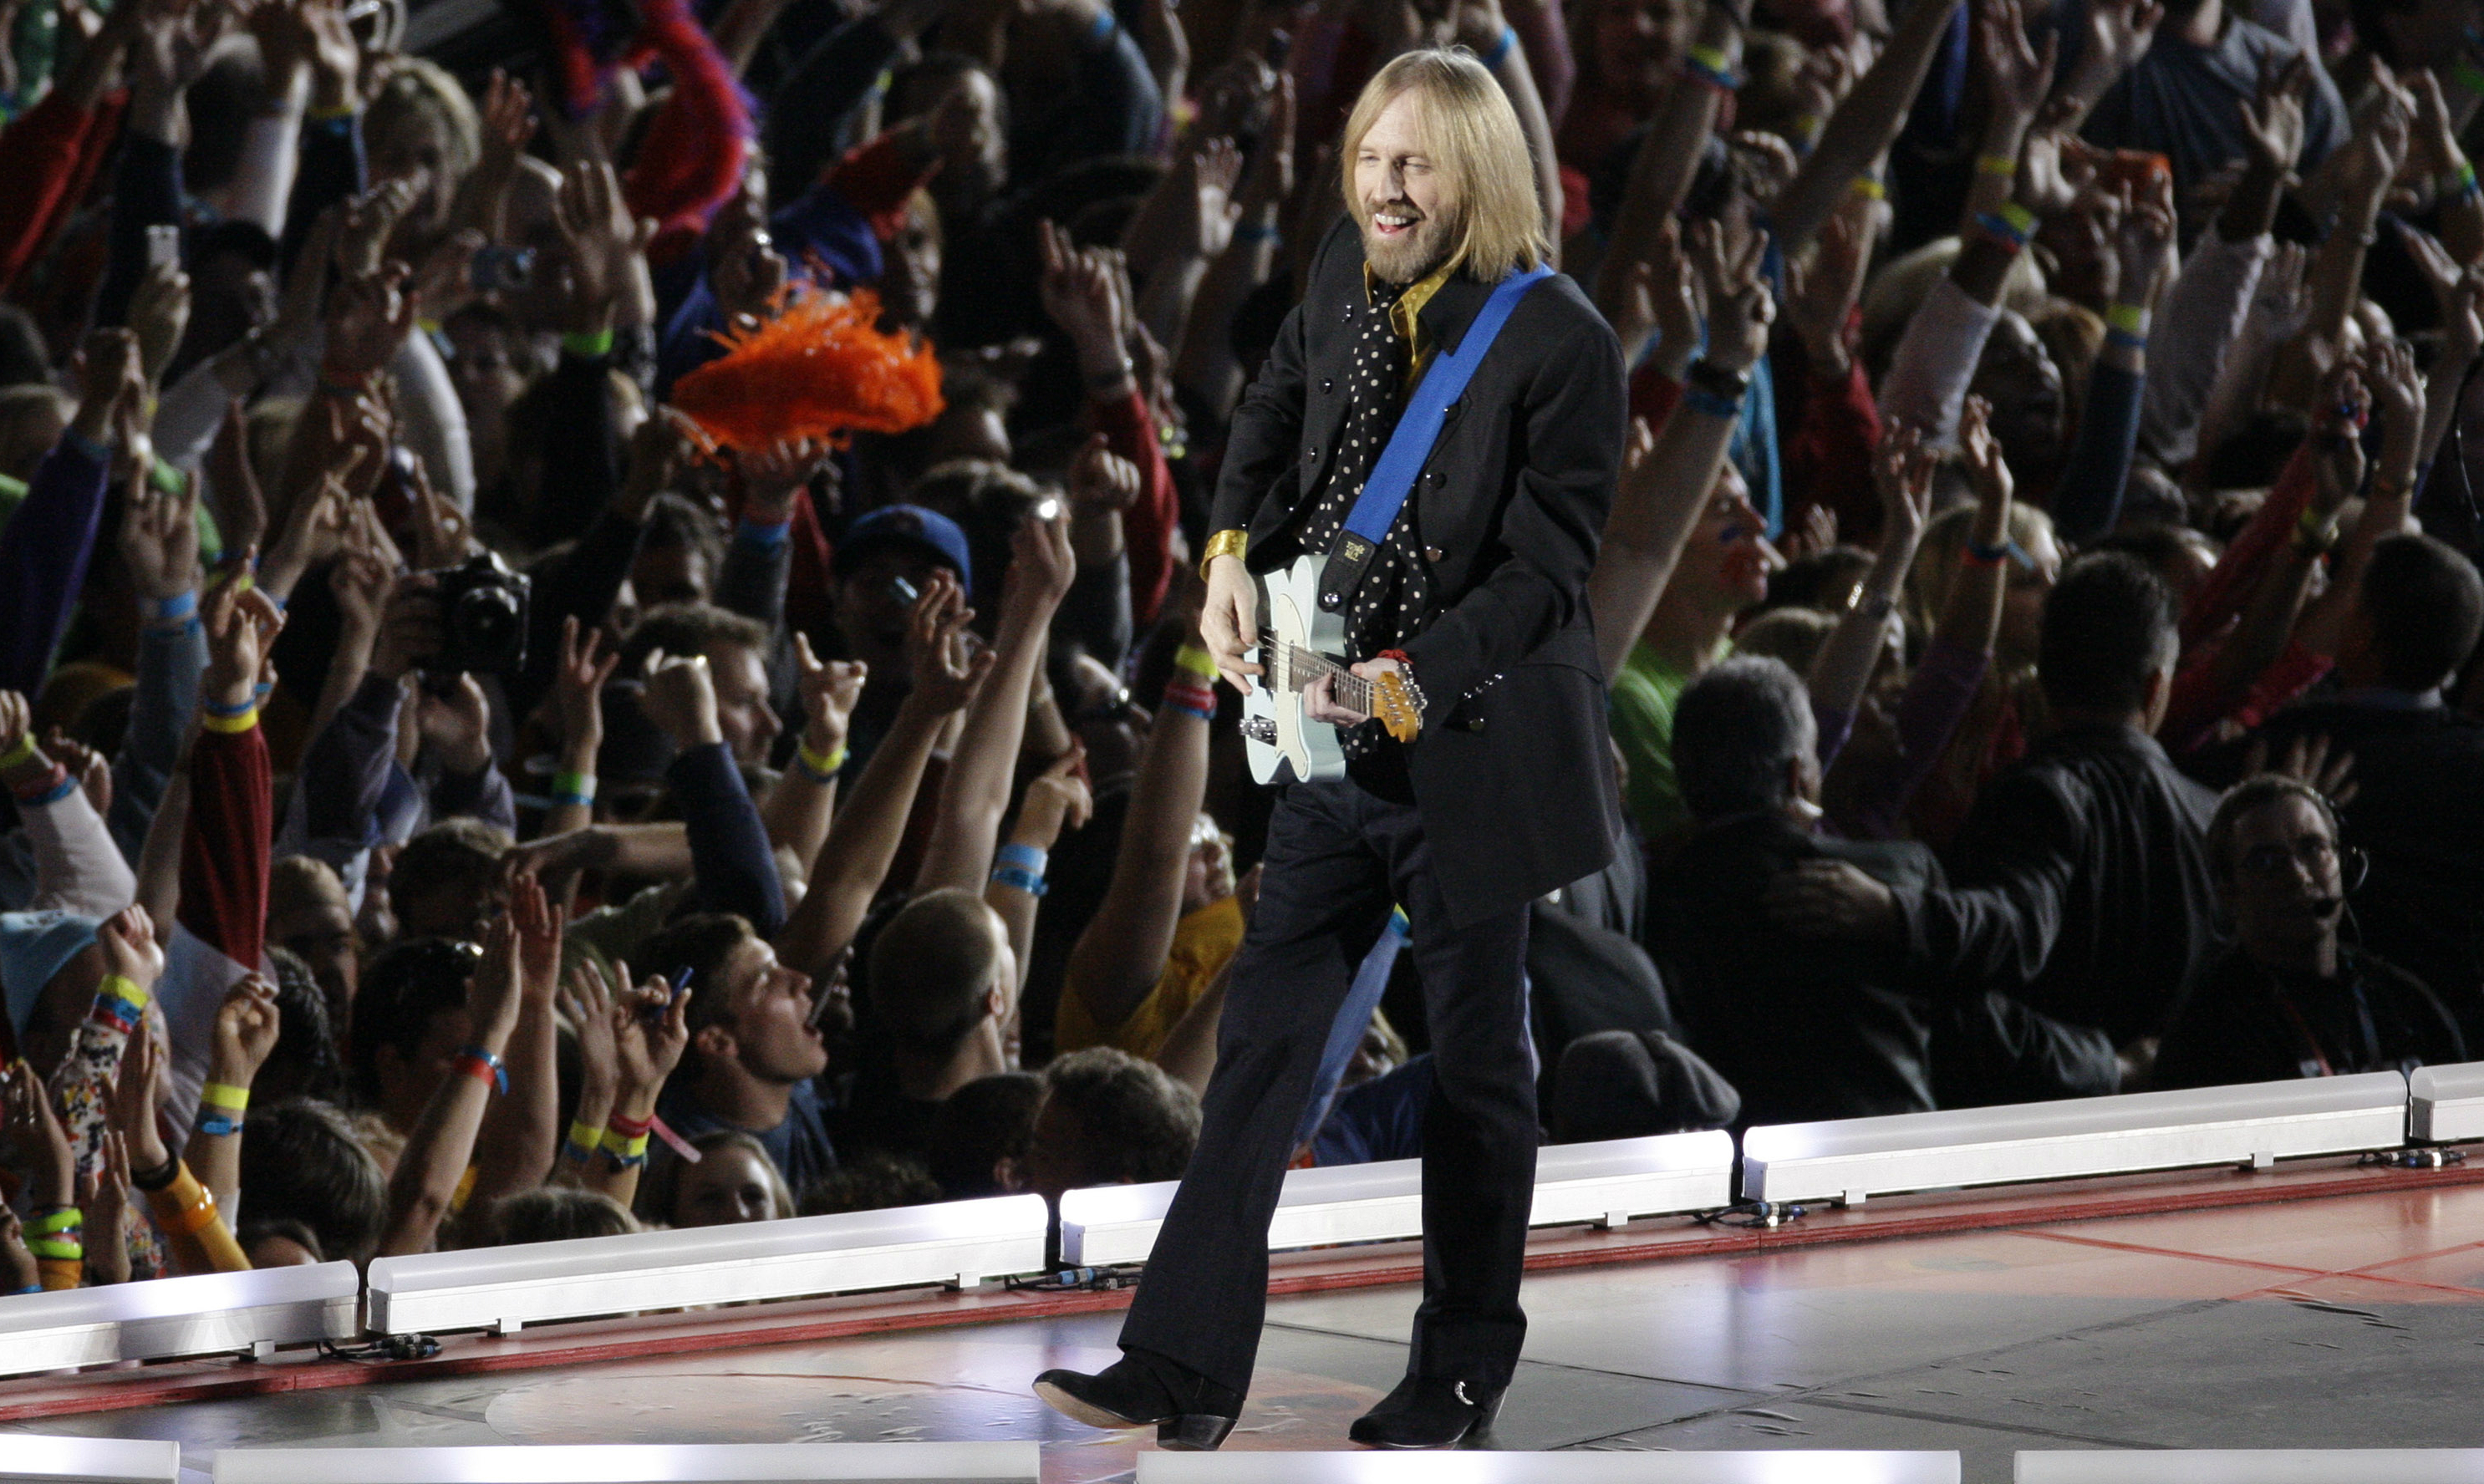 Tom Petty plays at the Superbowl